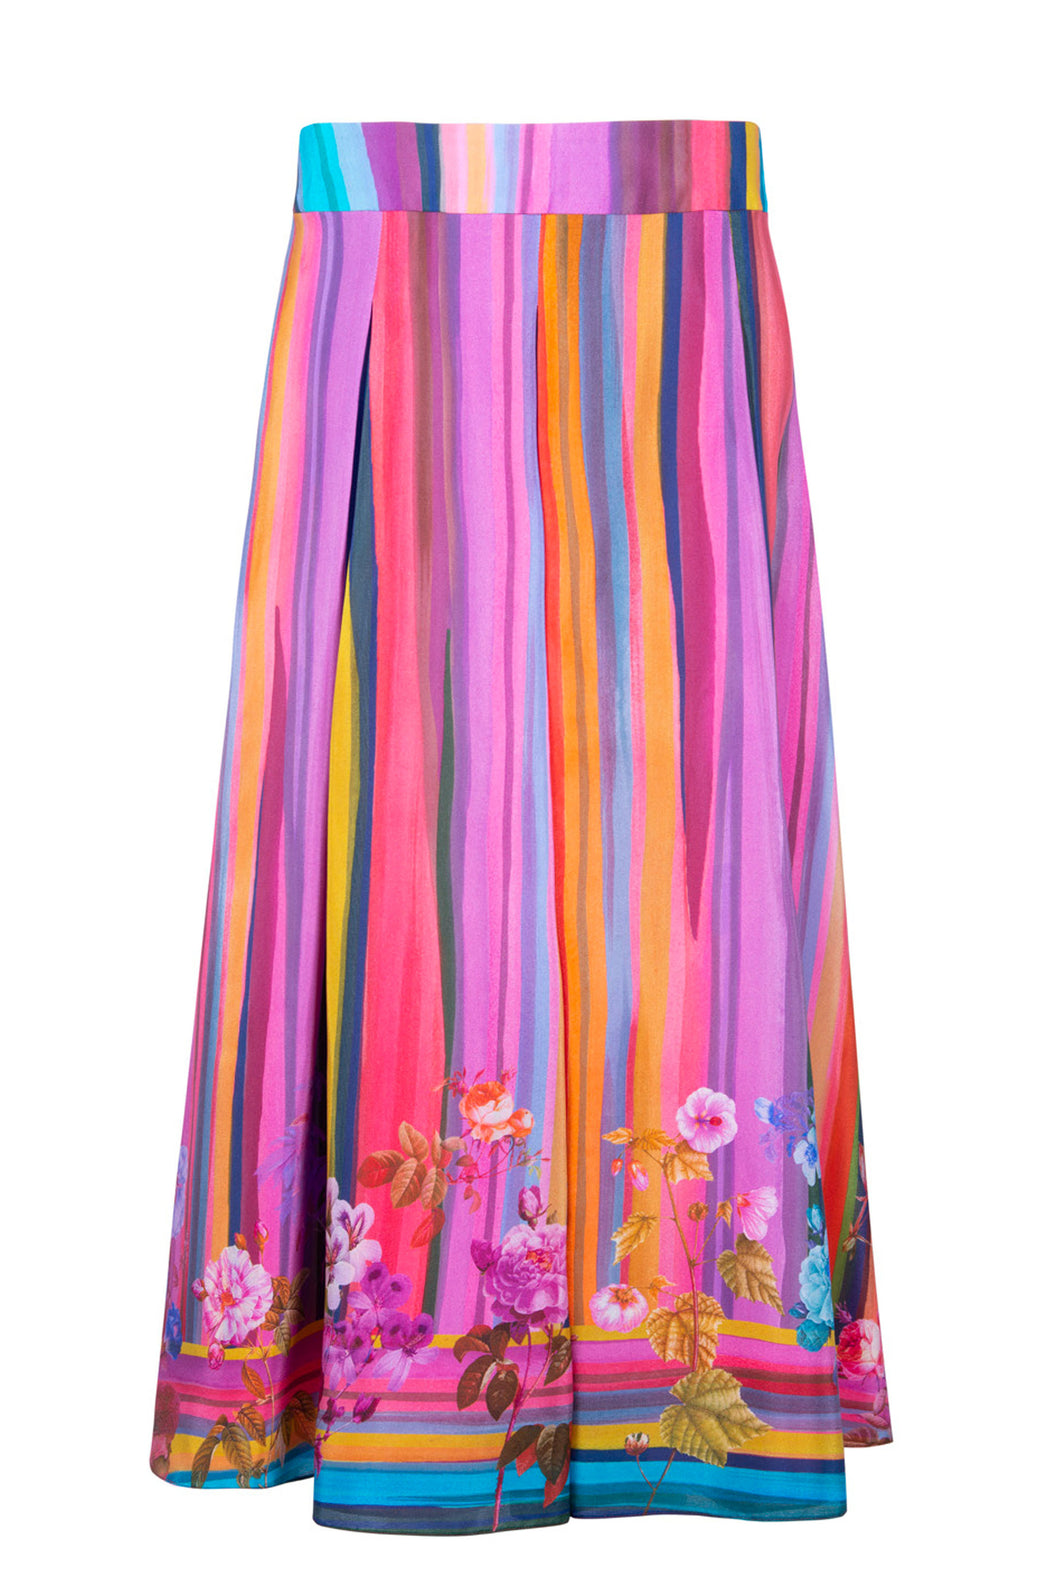 Gracie Skirt - Summer Sensuality